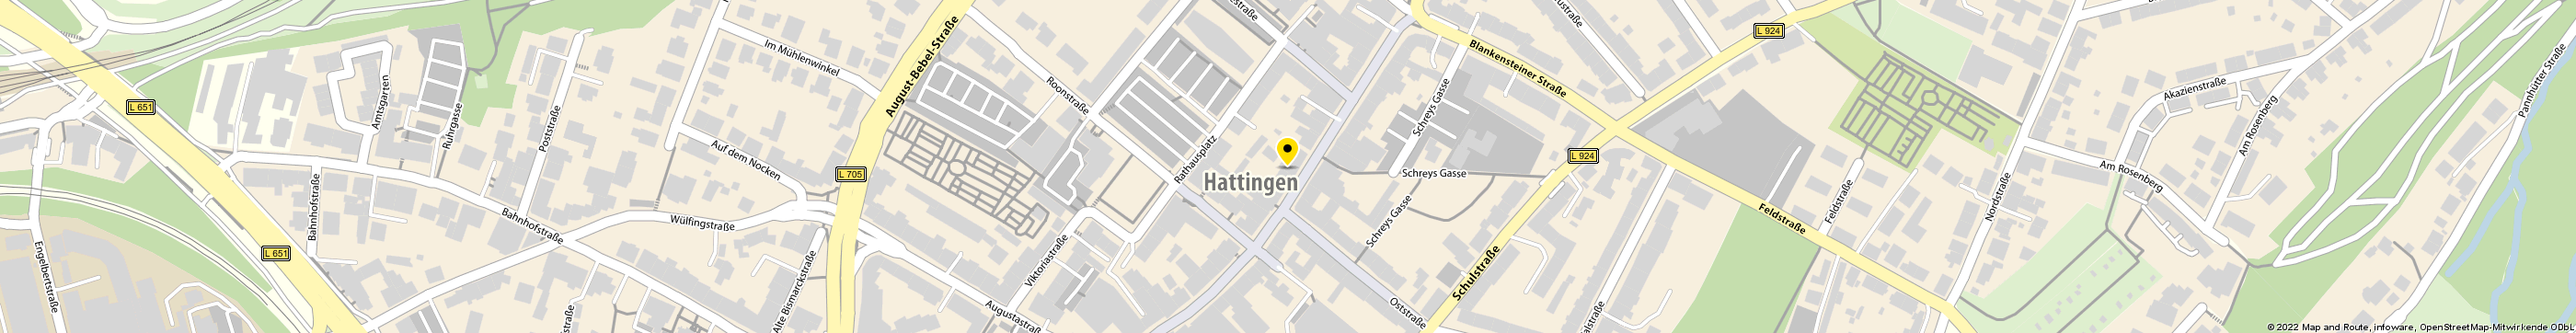 Commerzbank AG Filiale Hattingen in Hattingen Karte